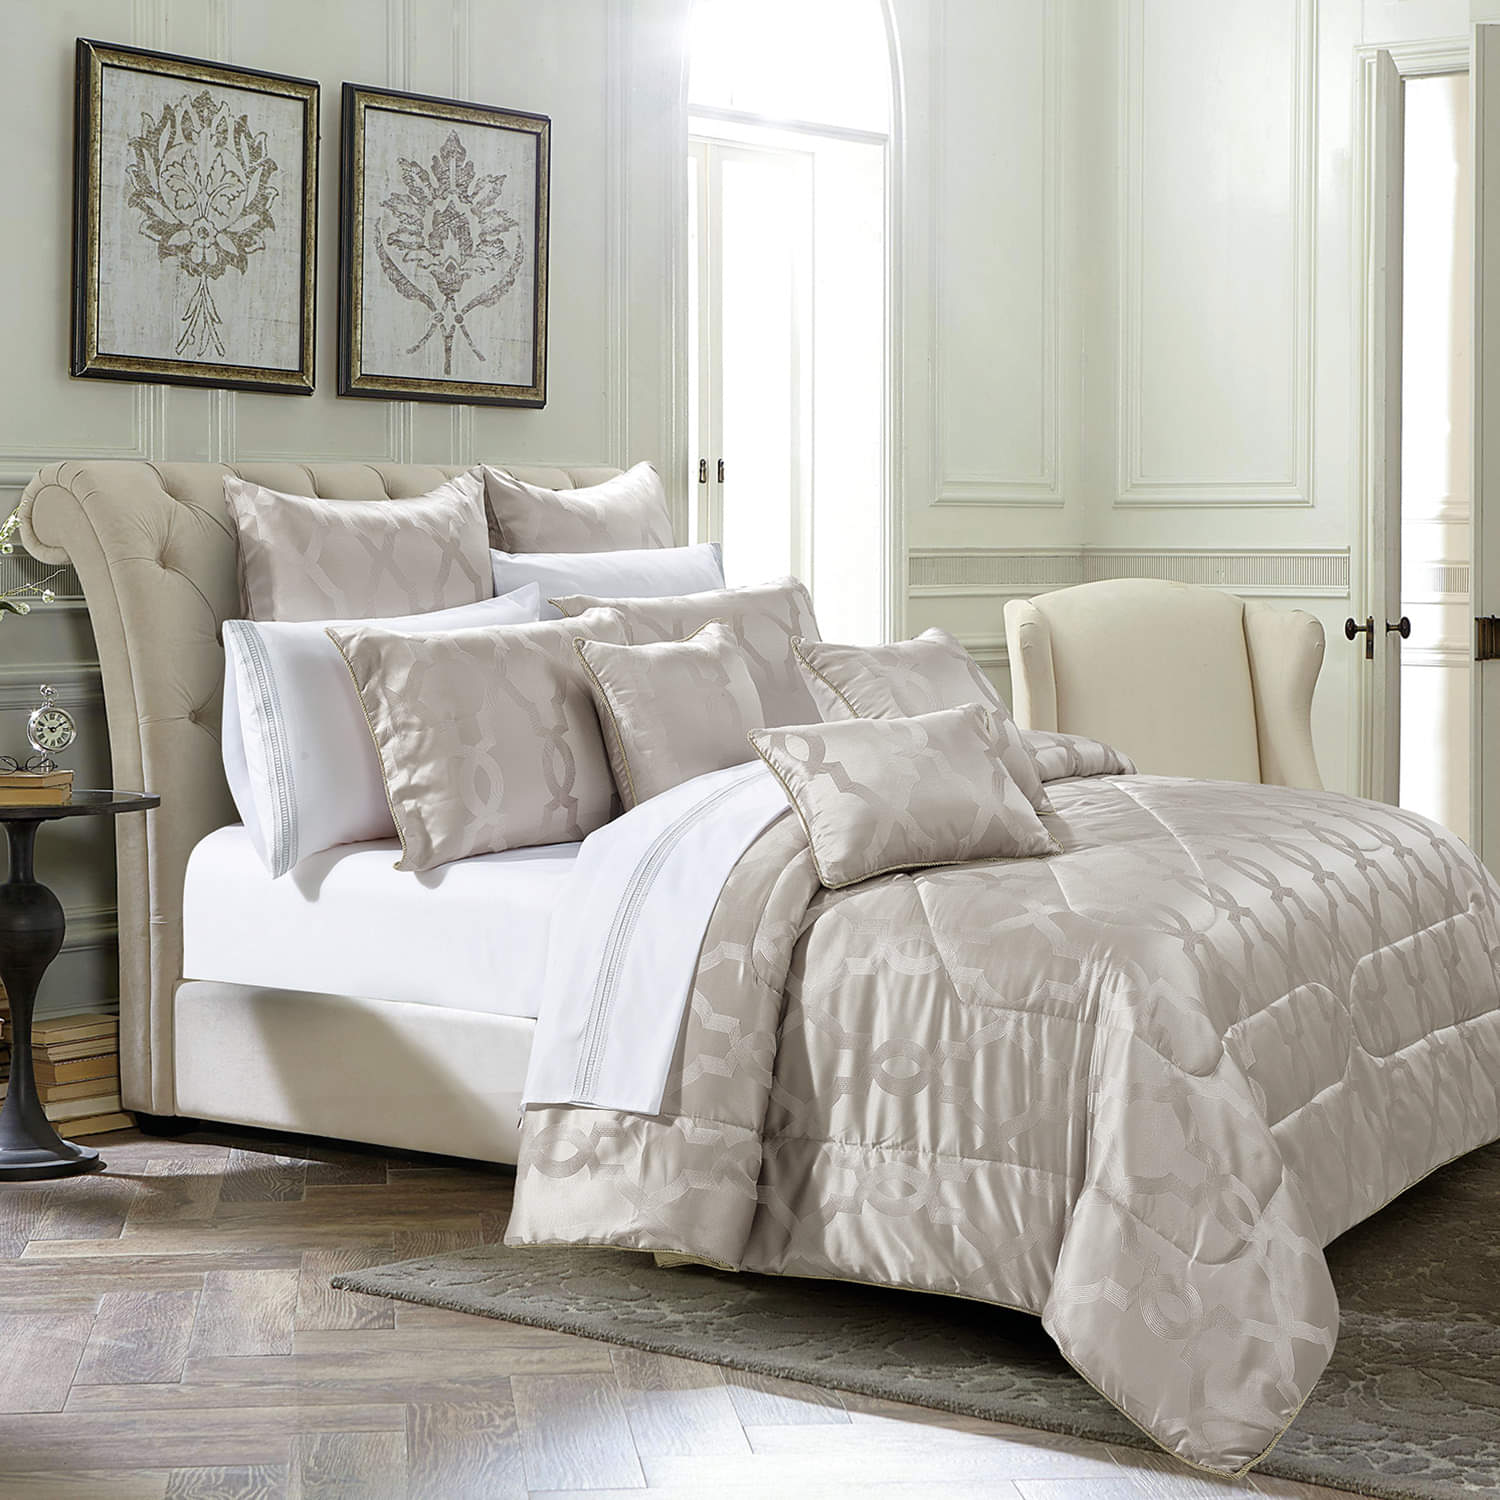 Jacquard Fabric Quilted Bedspread Set -1 Bedspread 2 Pillow covers (4327353712749)